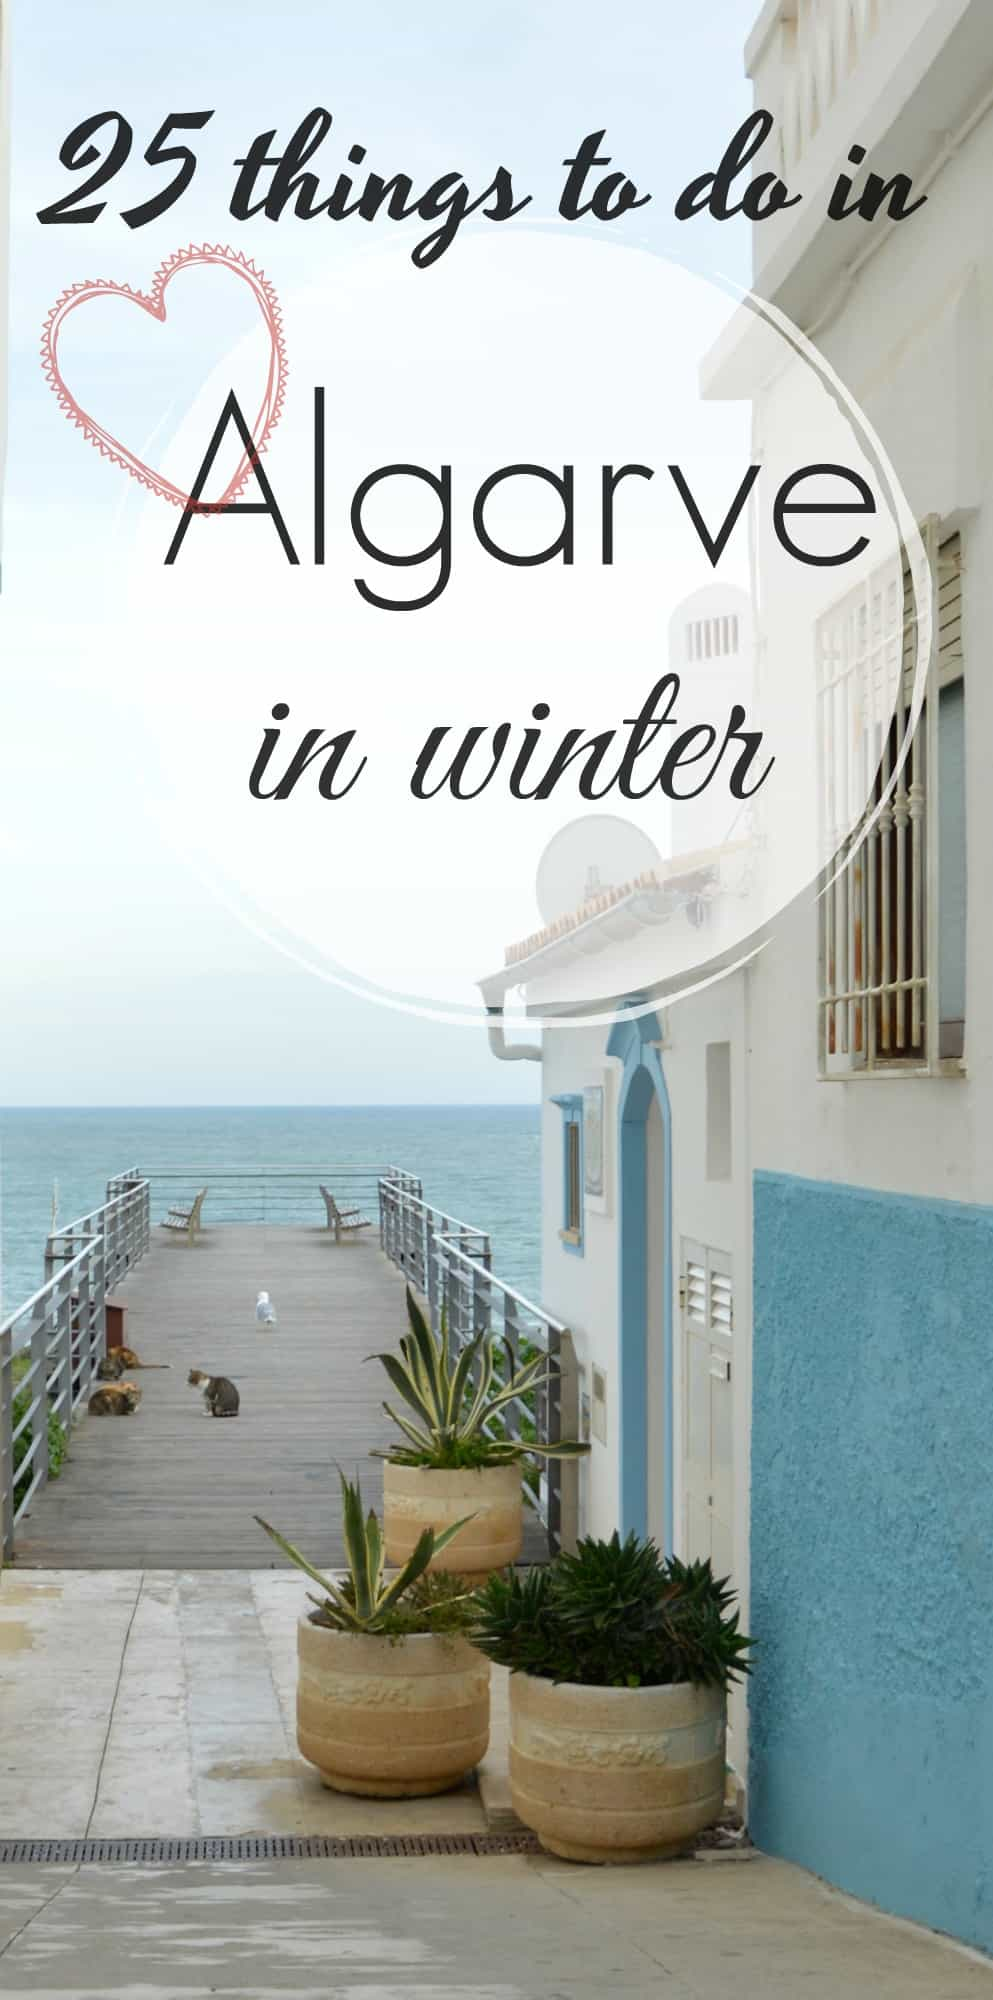 #Algarve in #Winter is the best #budget #destination during the european winter. The region in the south of #portugal has so much more to offer than simple #beach vacation. The  #landscape is stunning, the #food yummy... #ALgarve is the best place to be if you seek sun during #winter